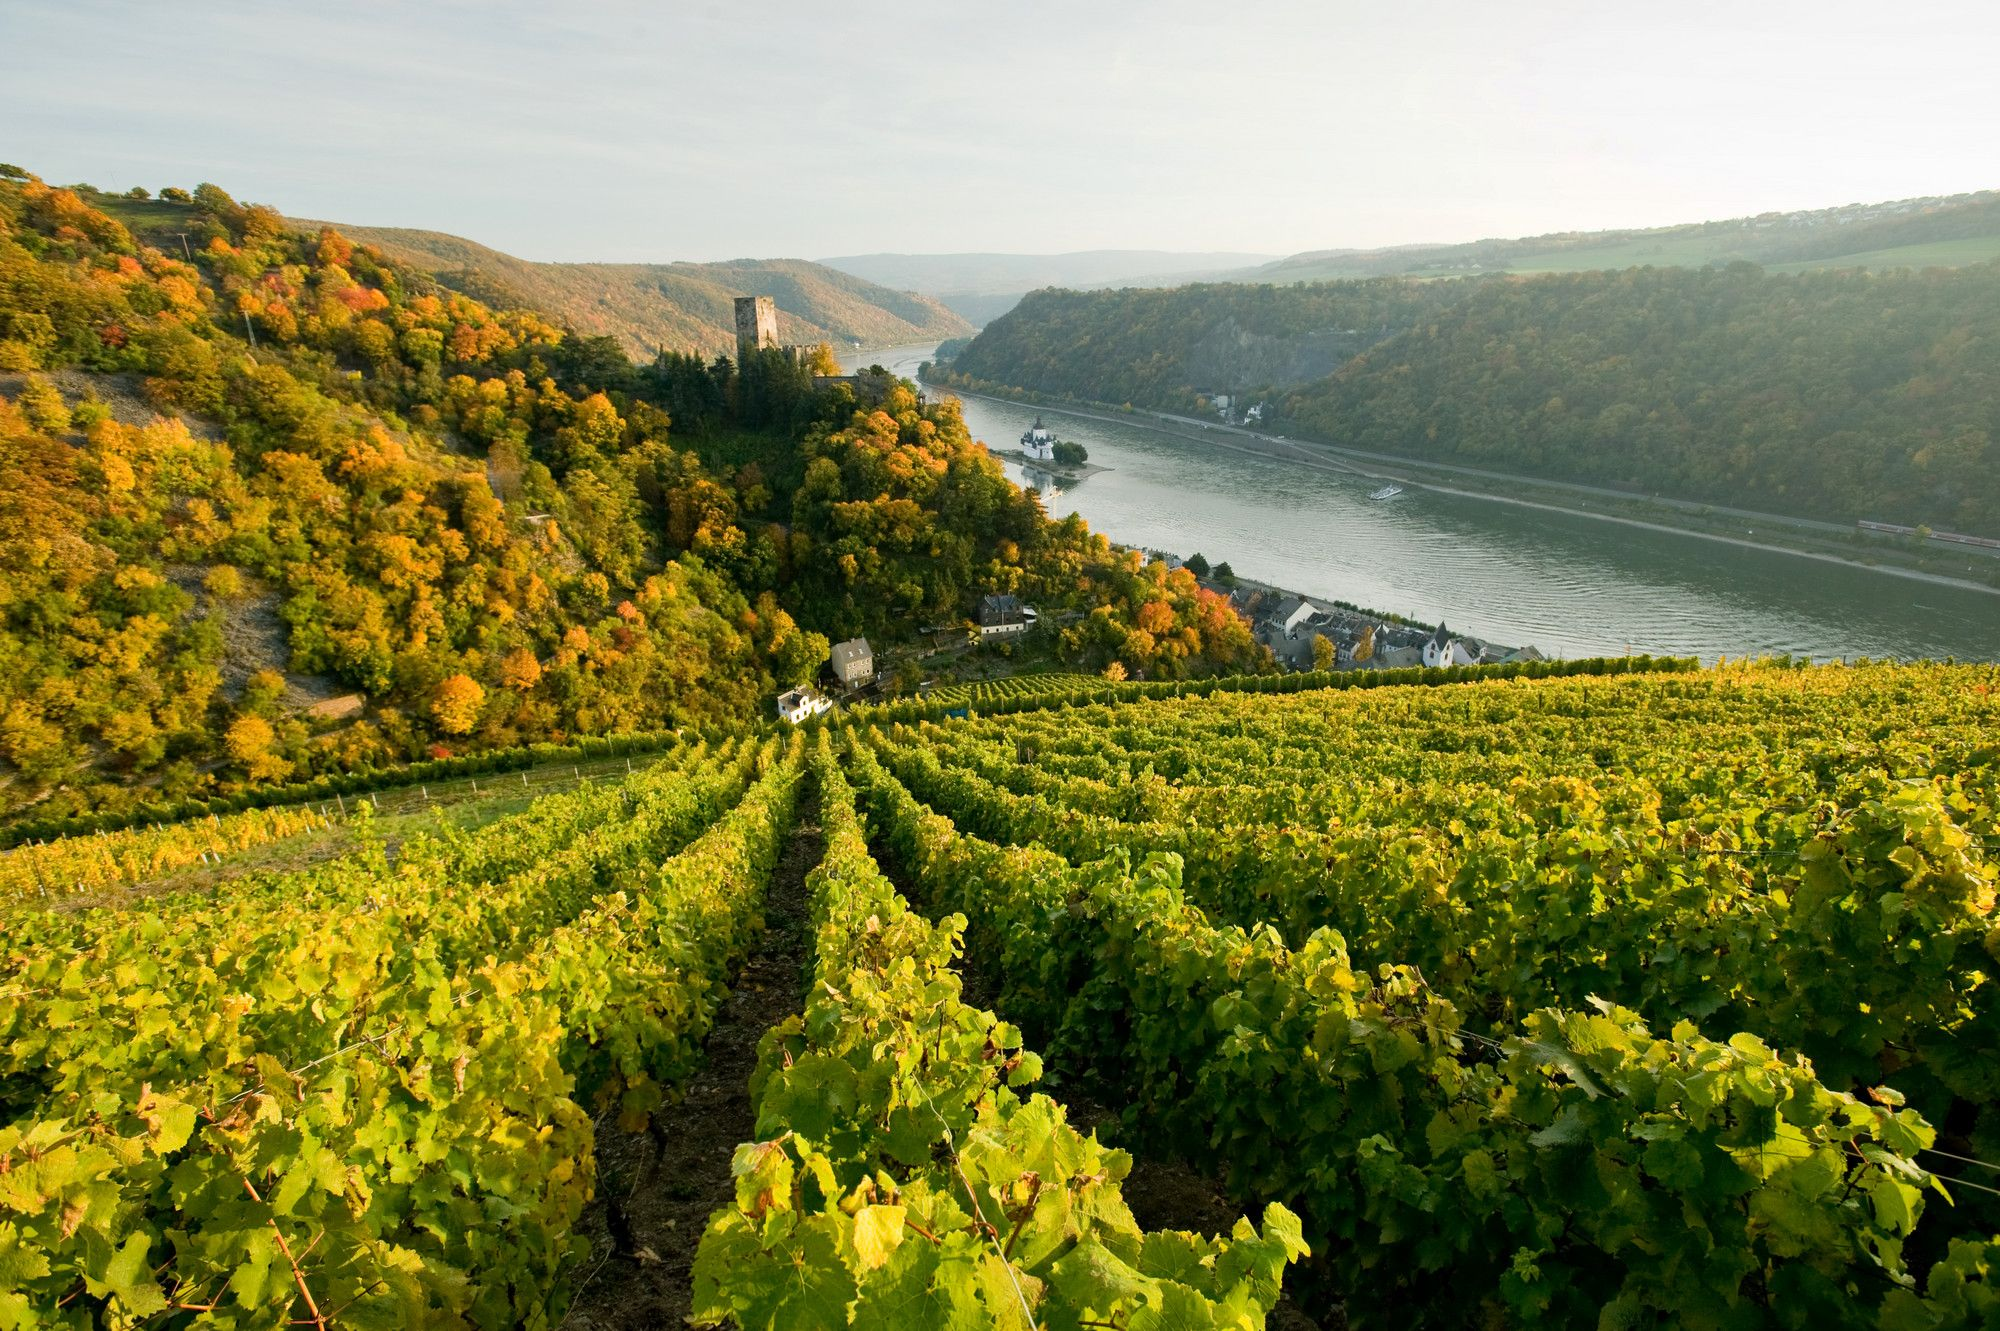 The hilly vineyards along the Rhine